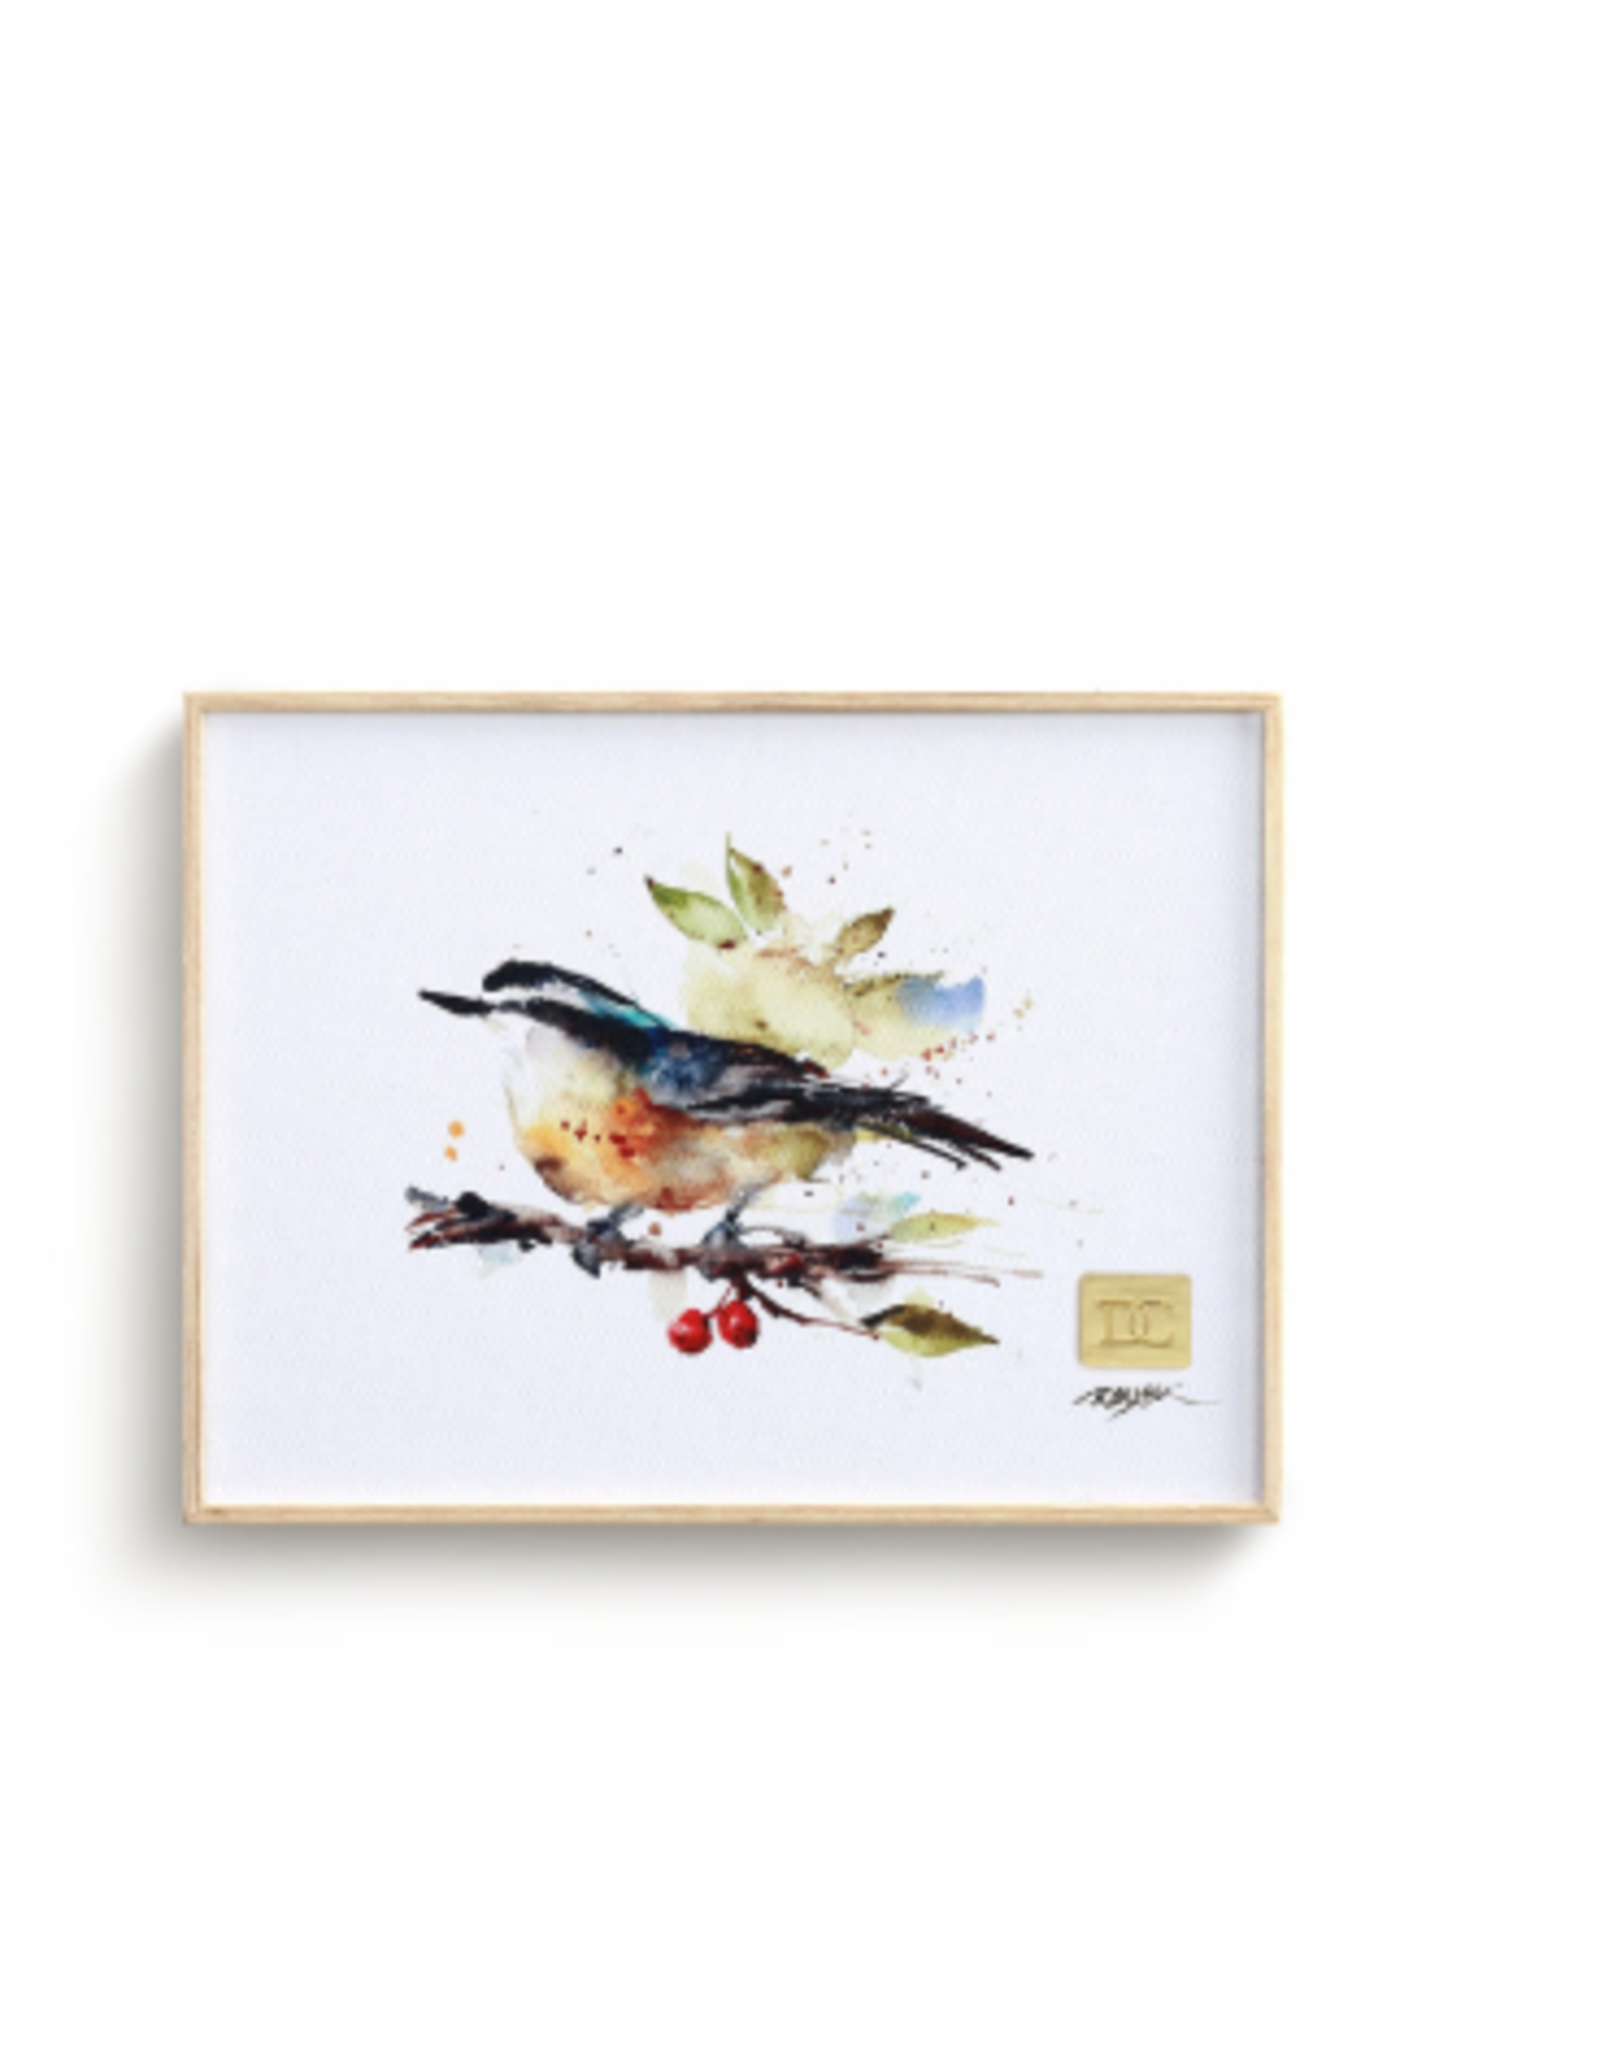 Demdaco NUTHATCHES AND BERRIES WALL ART